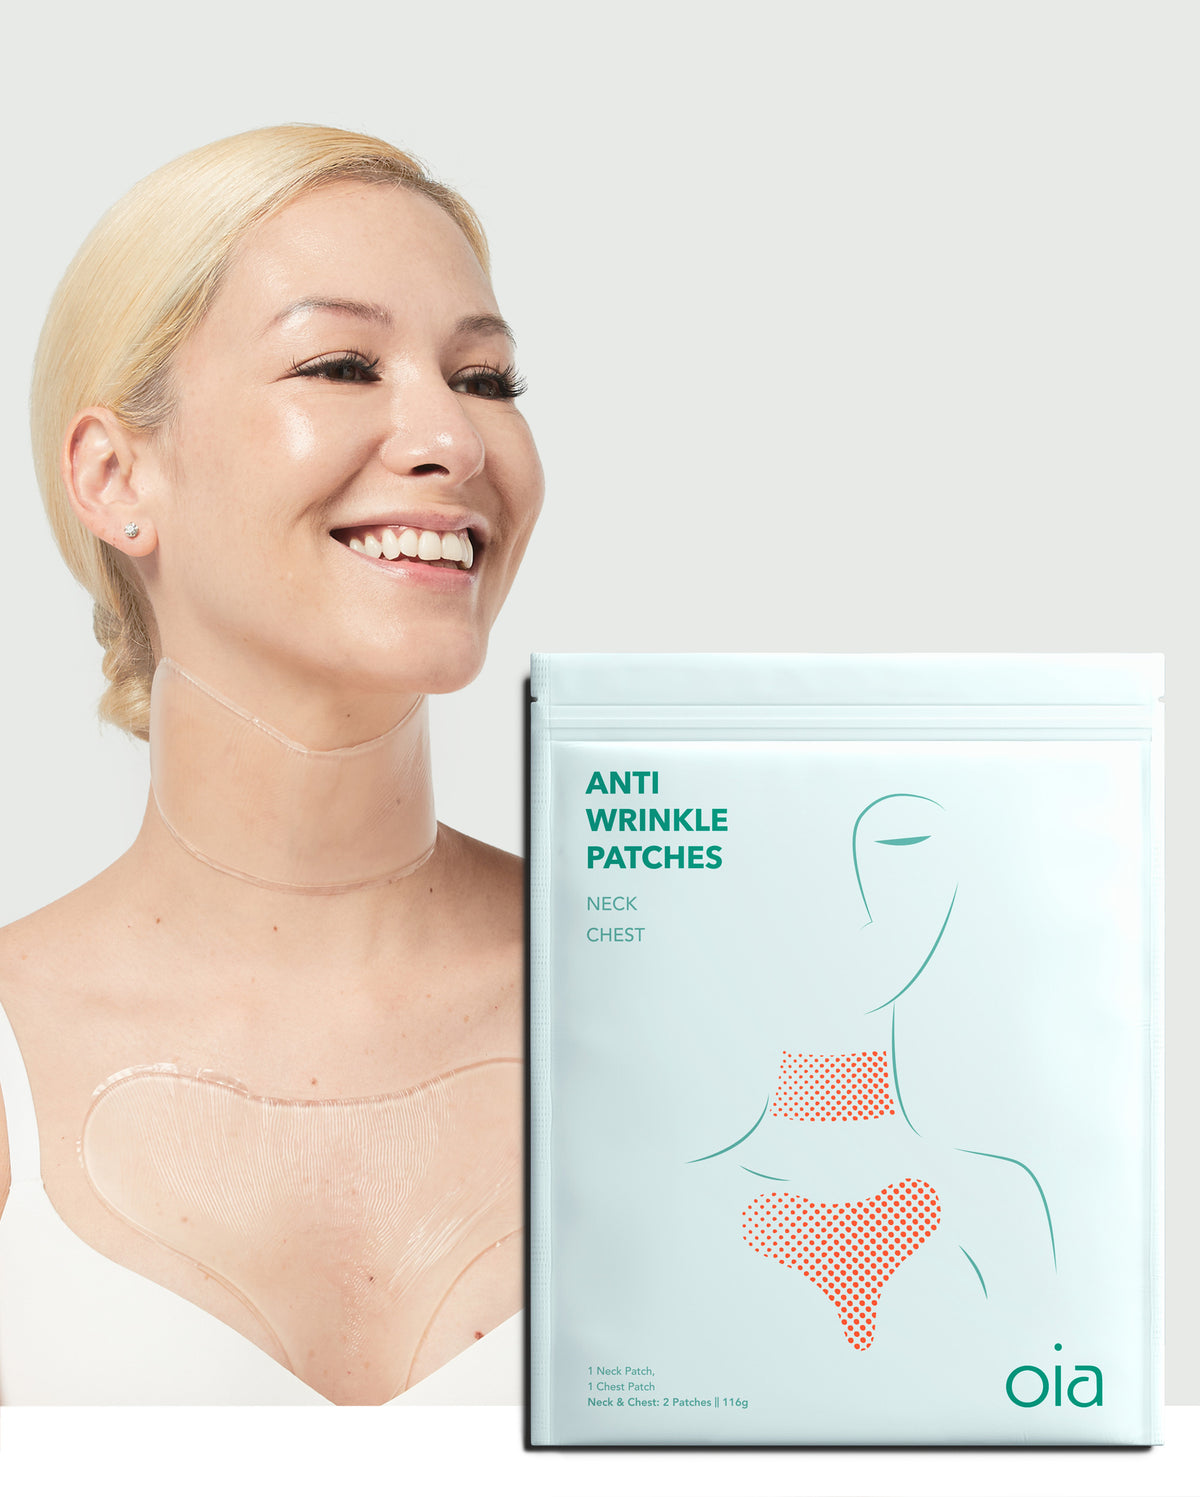 Anti-Wrinkle Patches for Neck & Chest